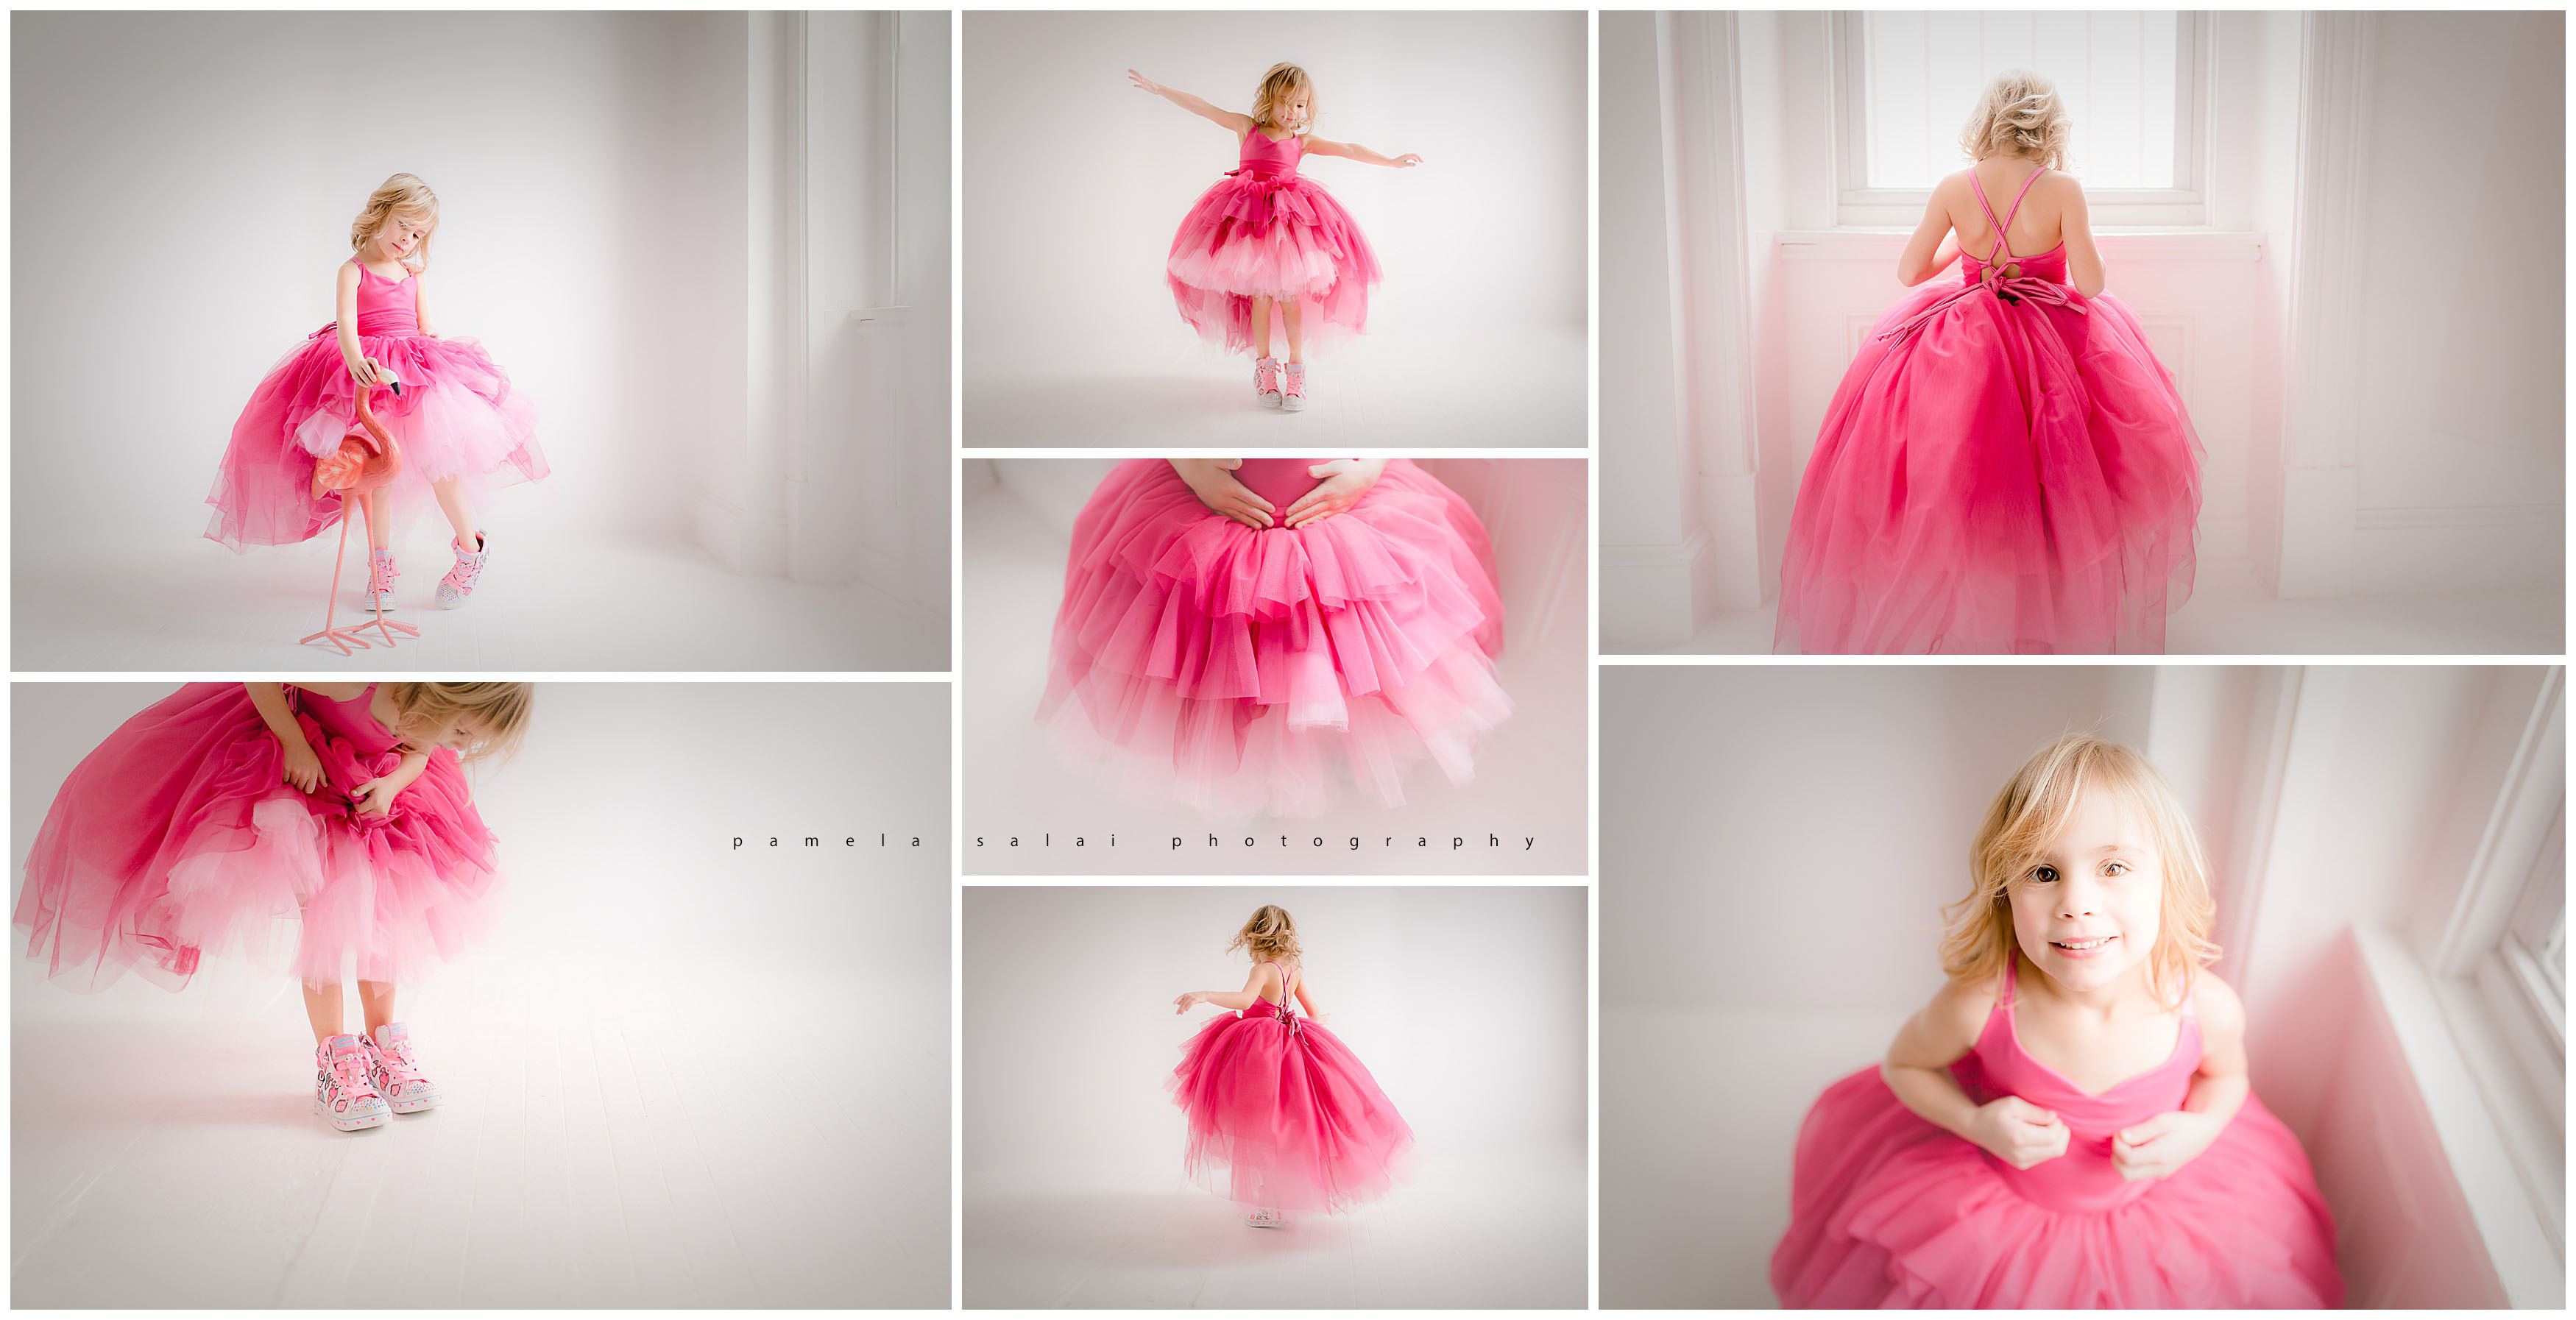 walking pink flamingos Pittsburgh child photographer pamela salai photography